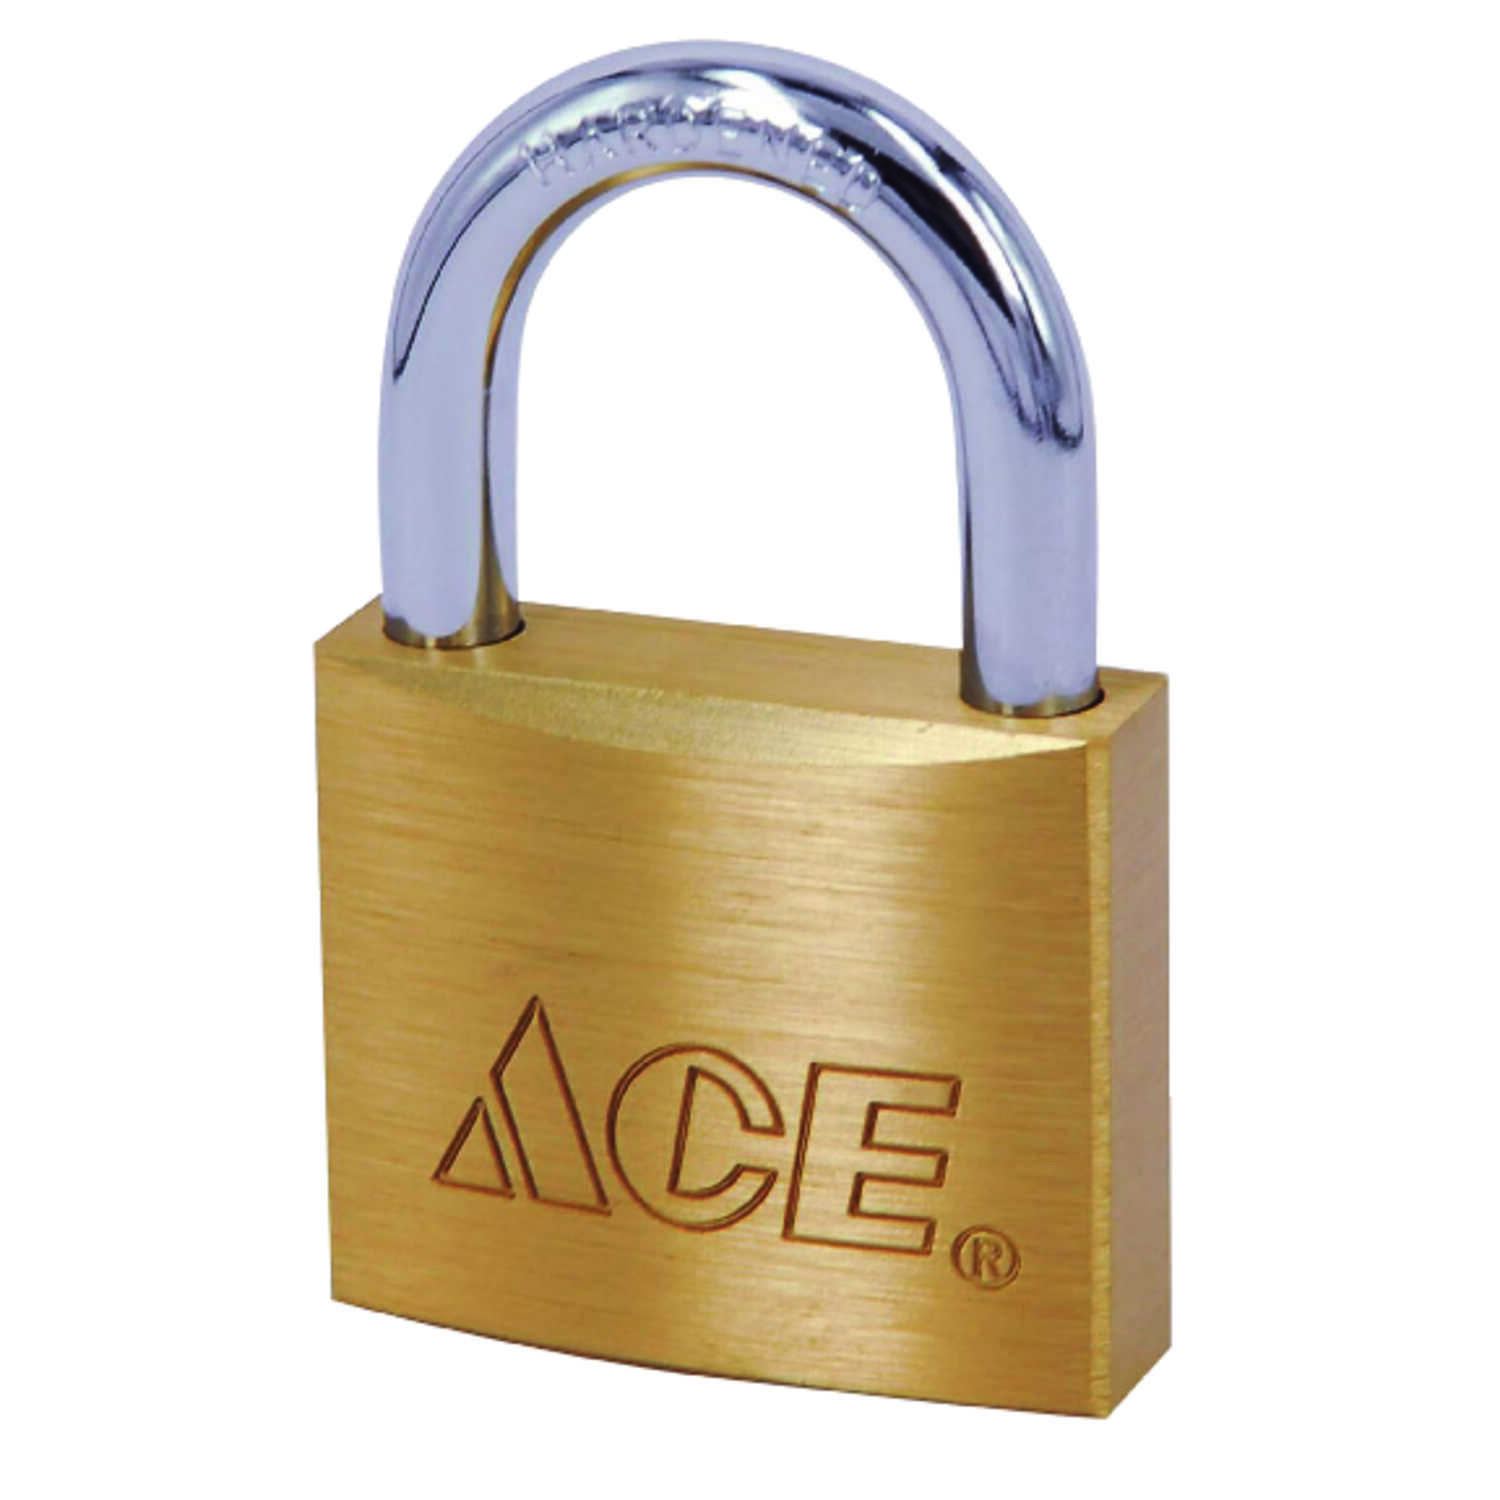 Ace  1-1/16 in. H x 1-1/8 in. W x 7/16 in. L Brass  Double Locking  Padlock  1 pk